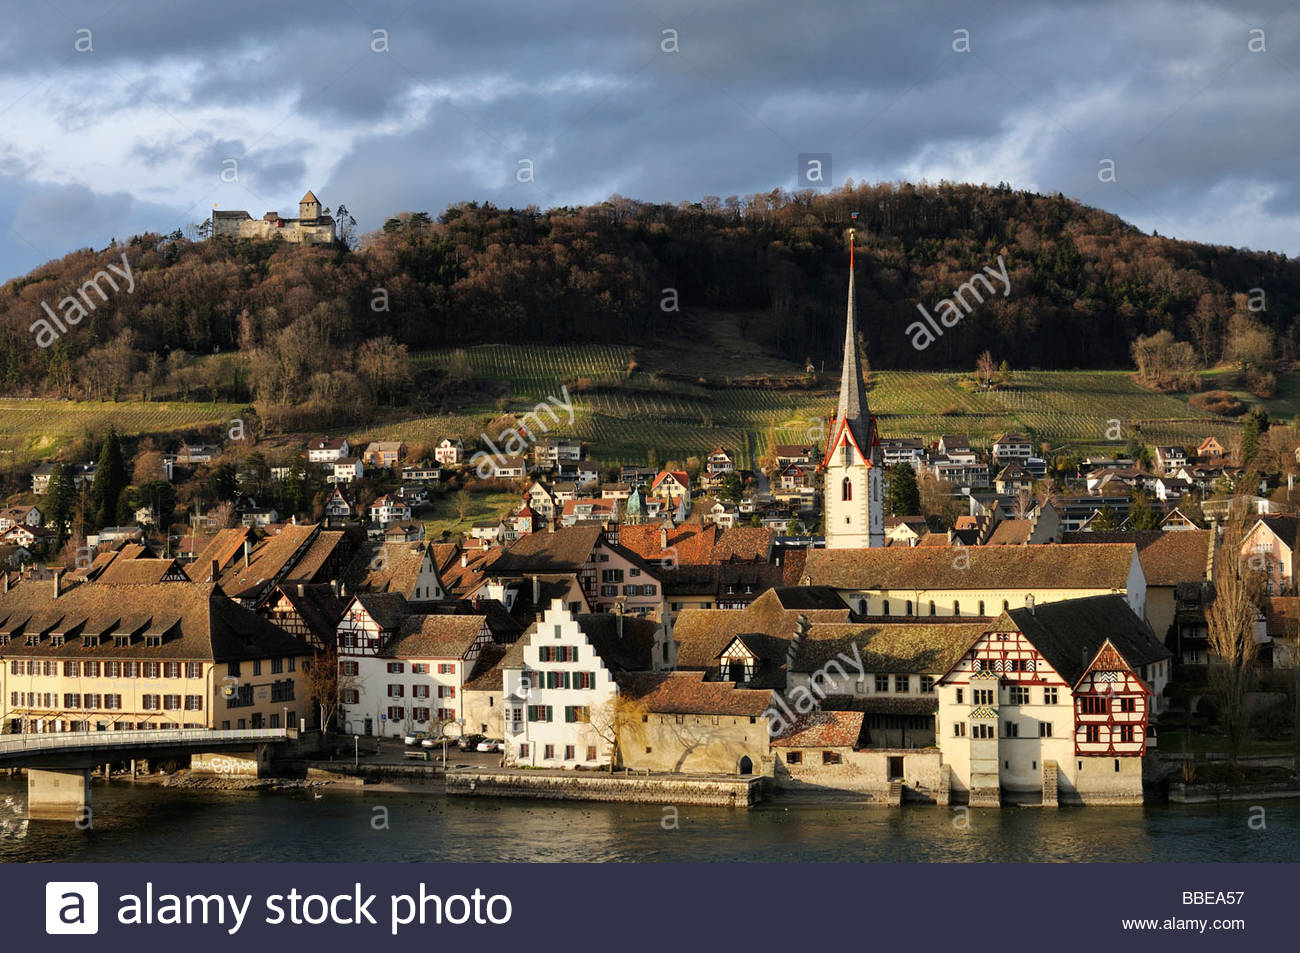 The Historic City Of Stein Am Rhein With The Castle Hohenklingen.